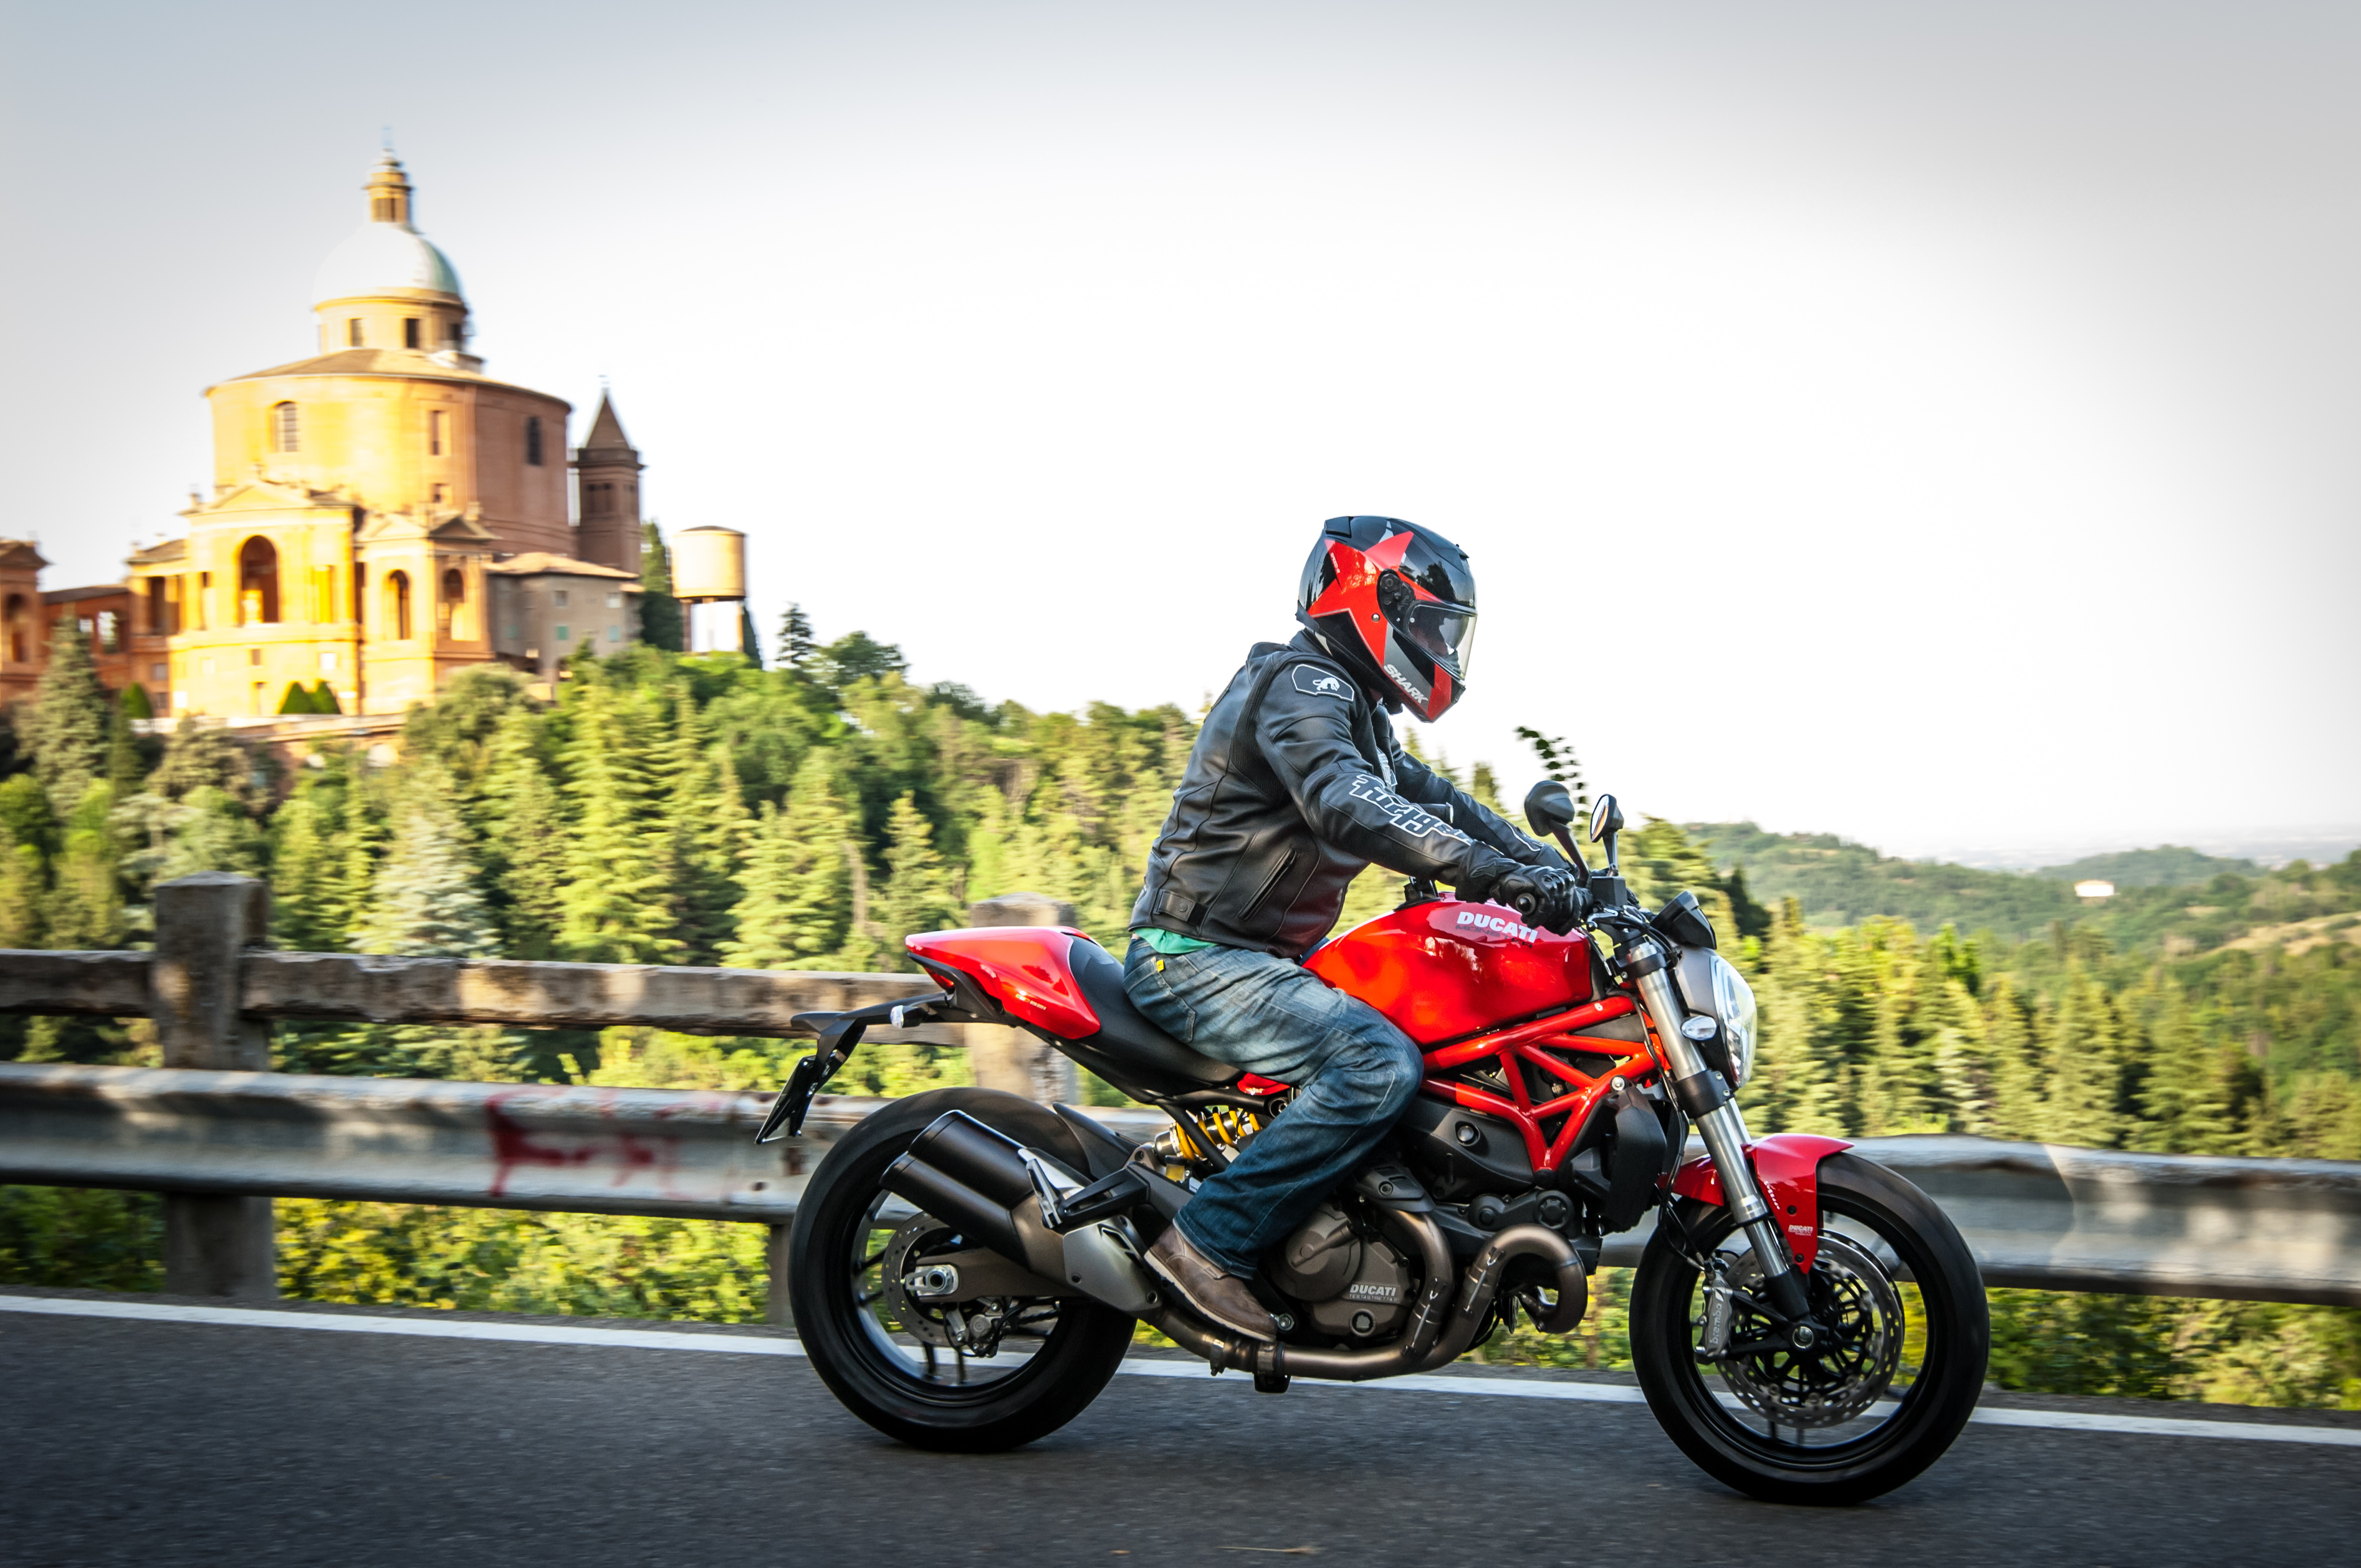 Ducati Monster 821 >> First ride: Ducati Monster 821 review | Visordown